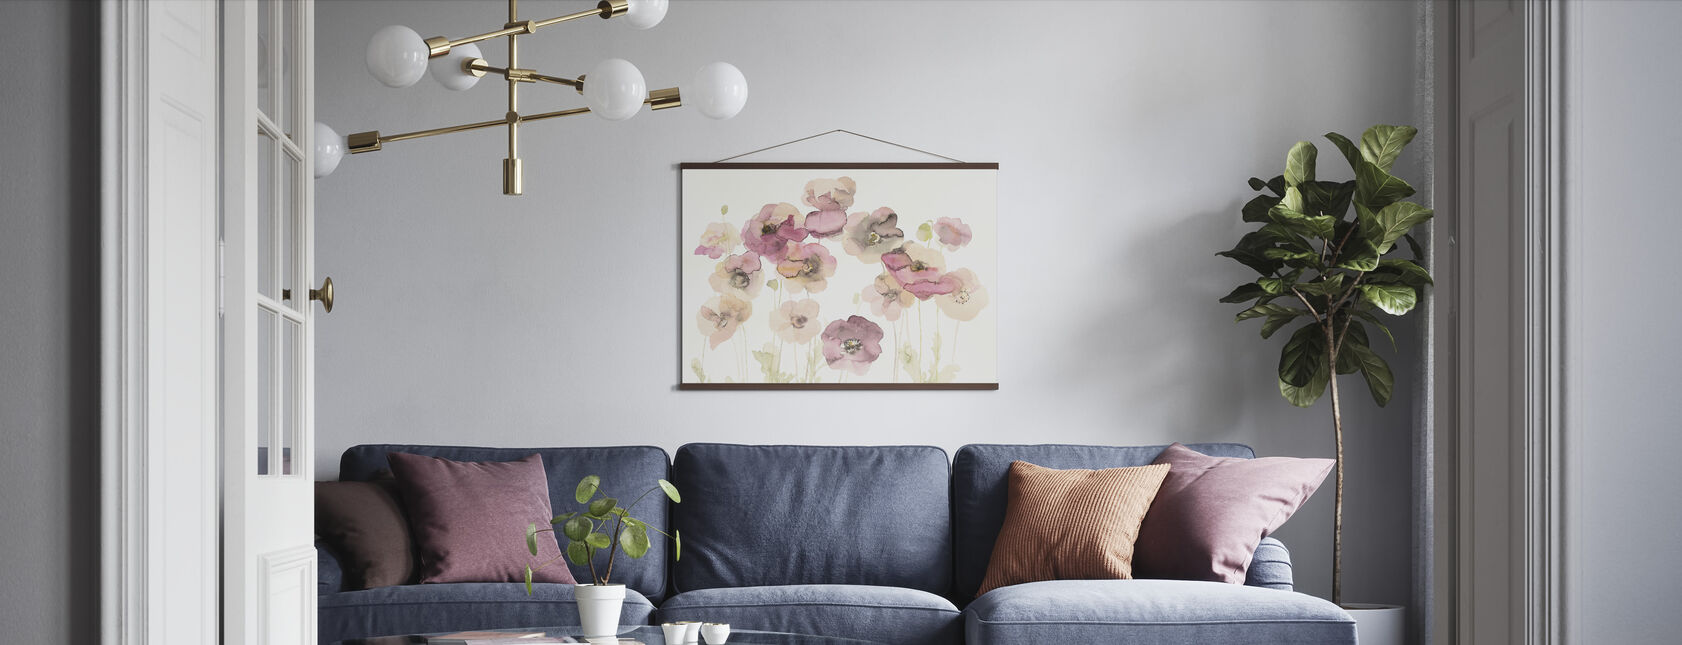 Delicate Poppies - Poster - Living Room